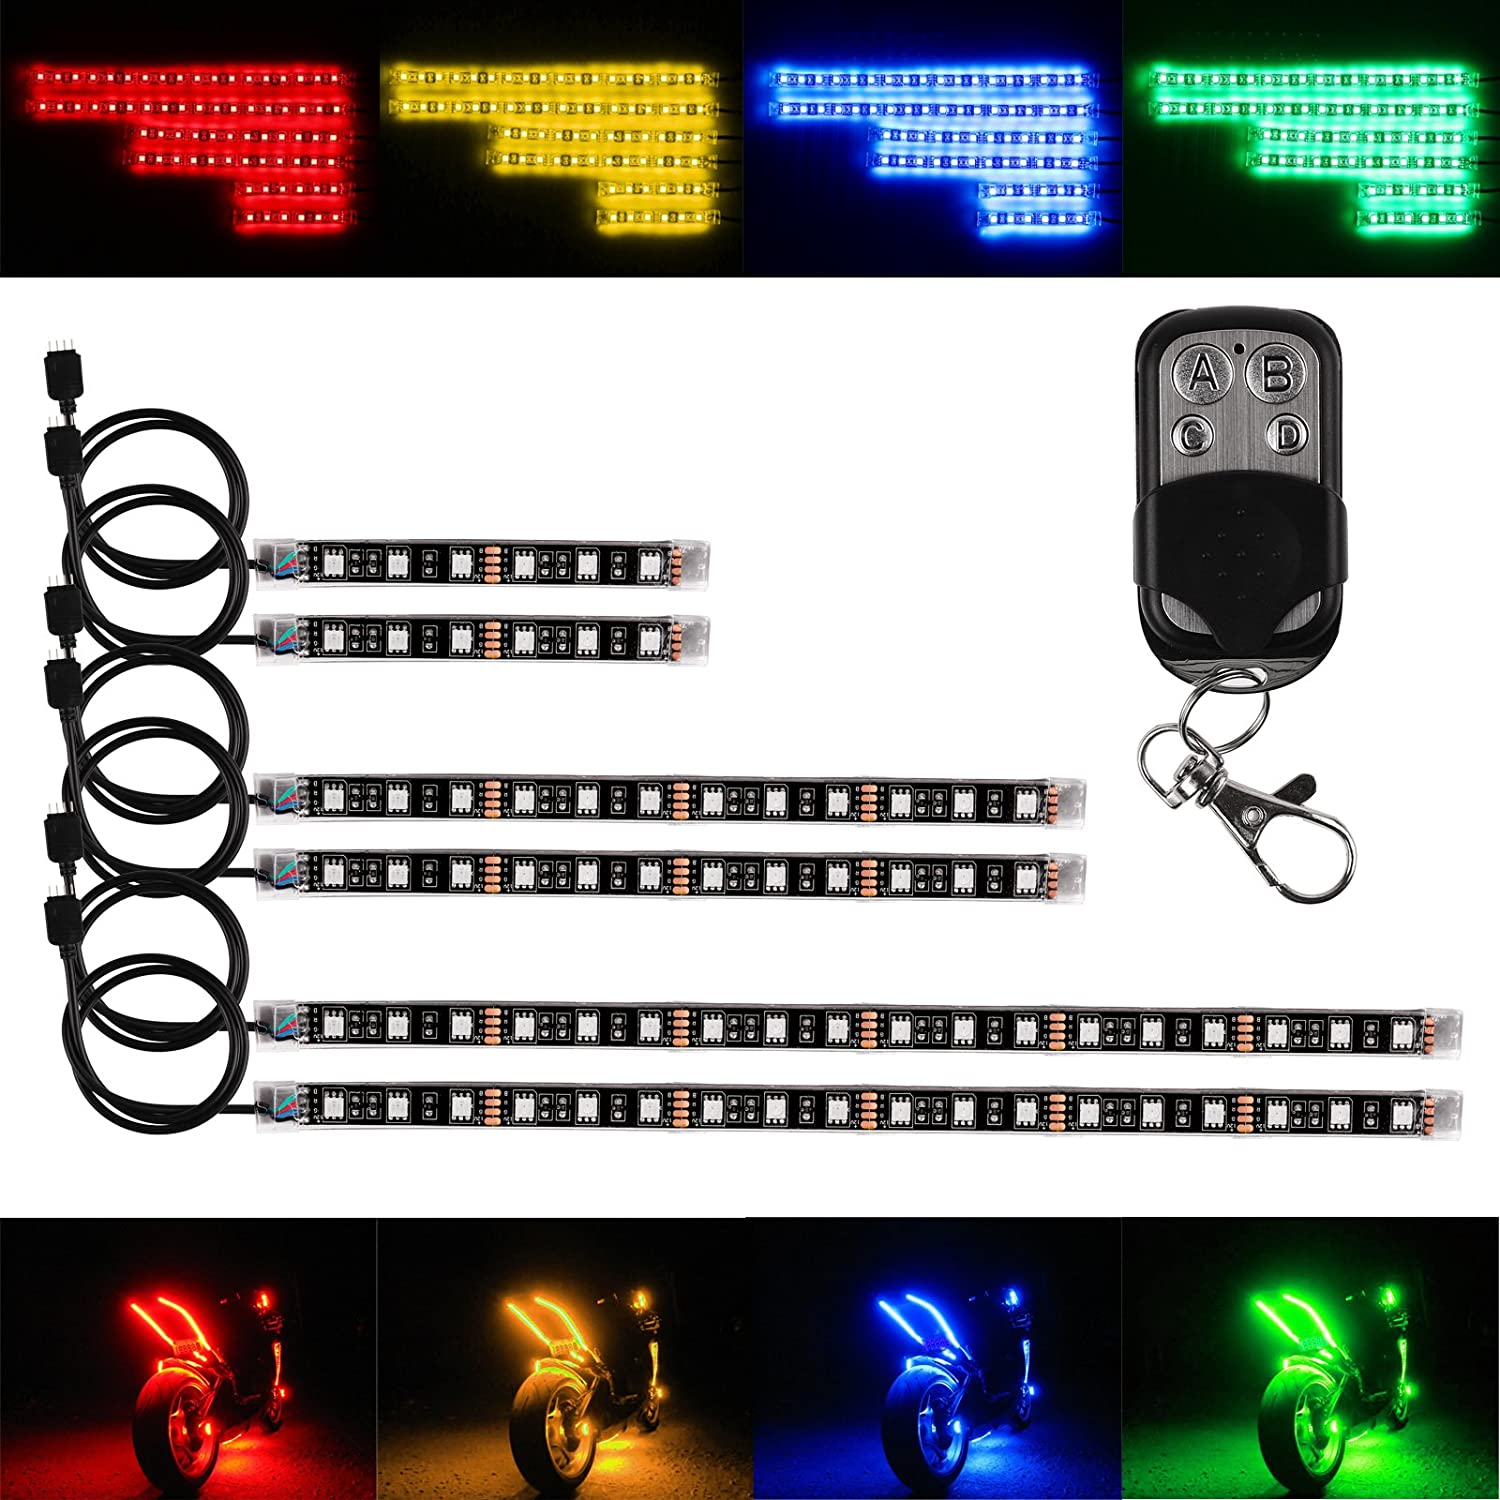 DEBEME 6PCS RGB Vioce Control LED Car Motorcycle Glow Lights 5050SMD Flexible Neon Strips Kit Chopper Frame